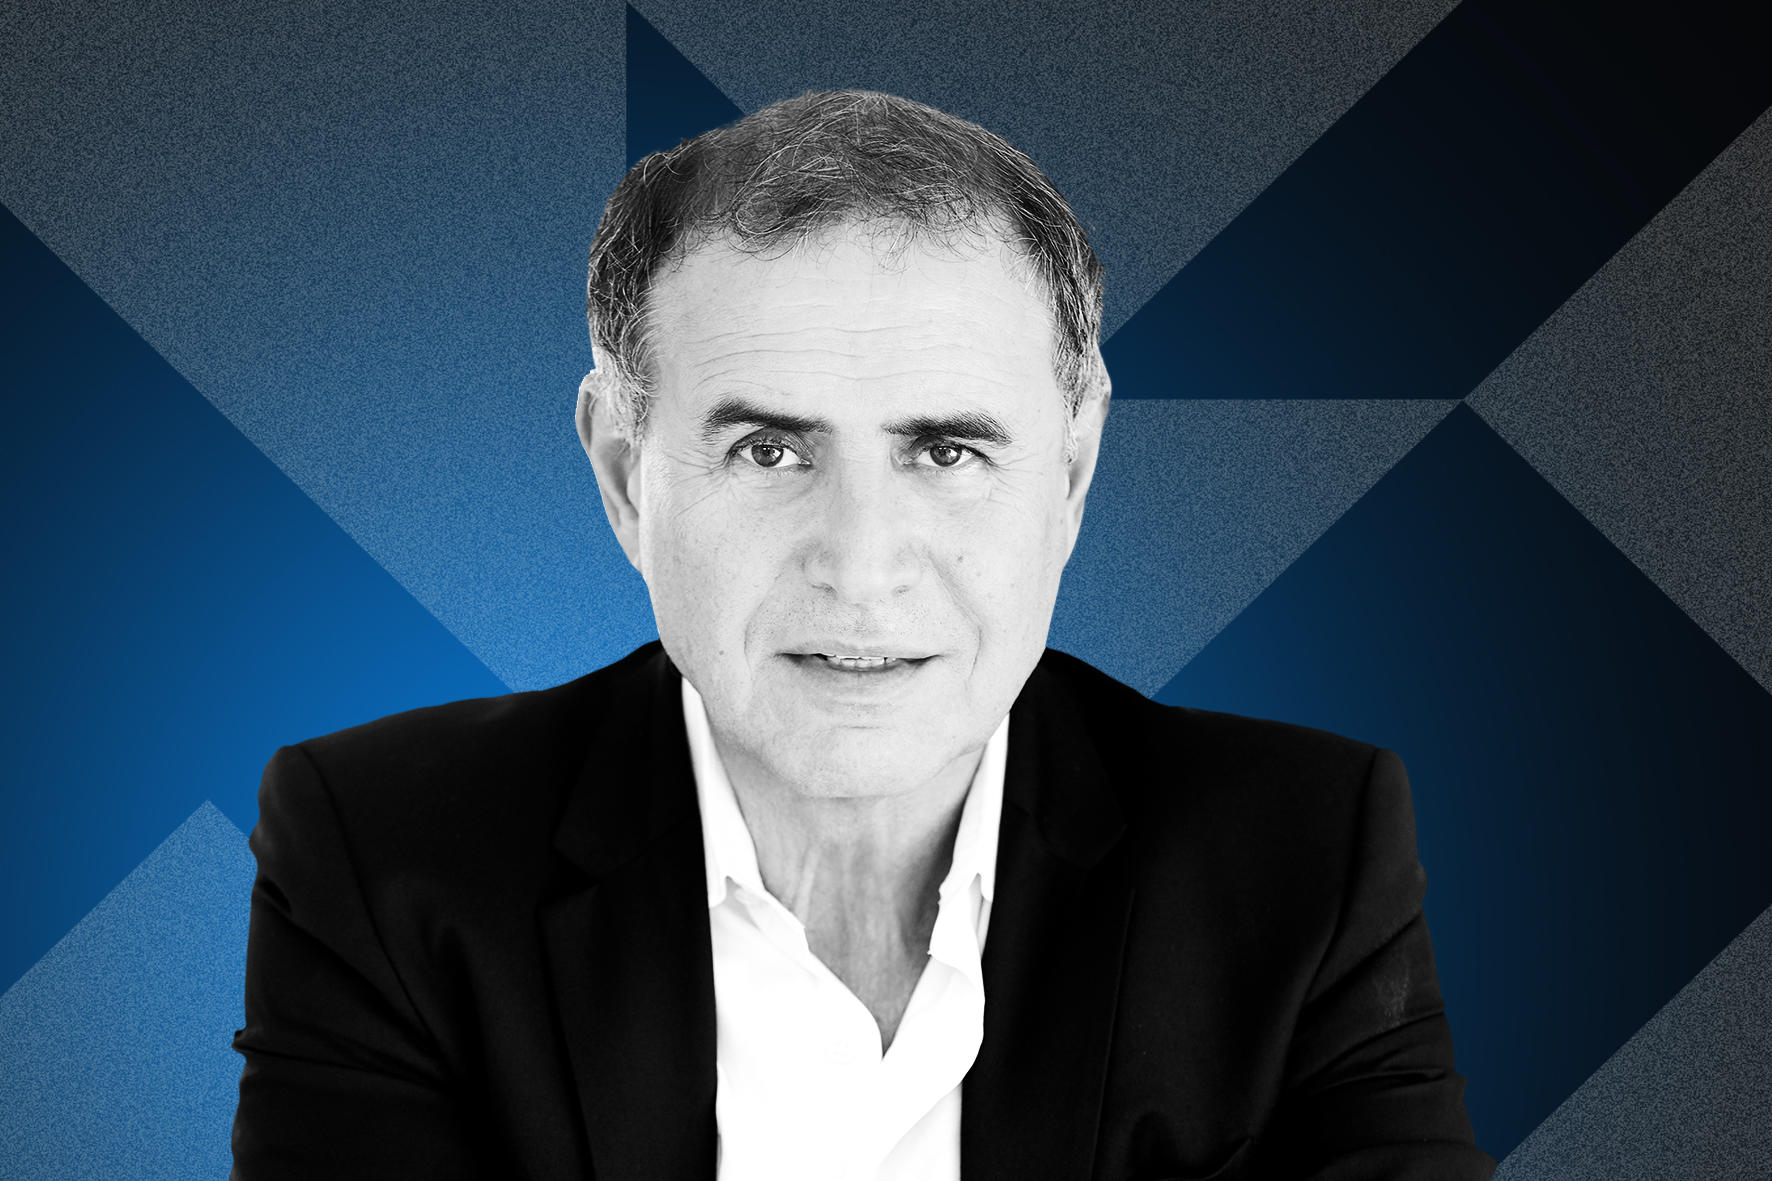 INTERVIEW: Nouriel Roubini talks about the future of global economy post COVID-19